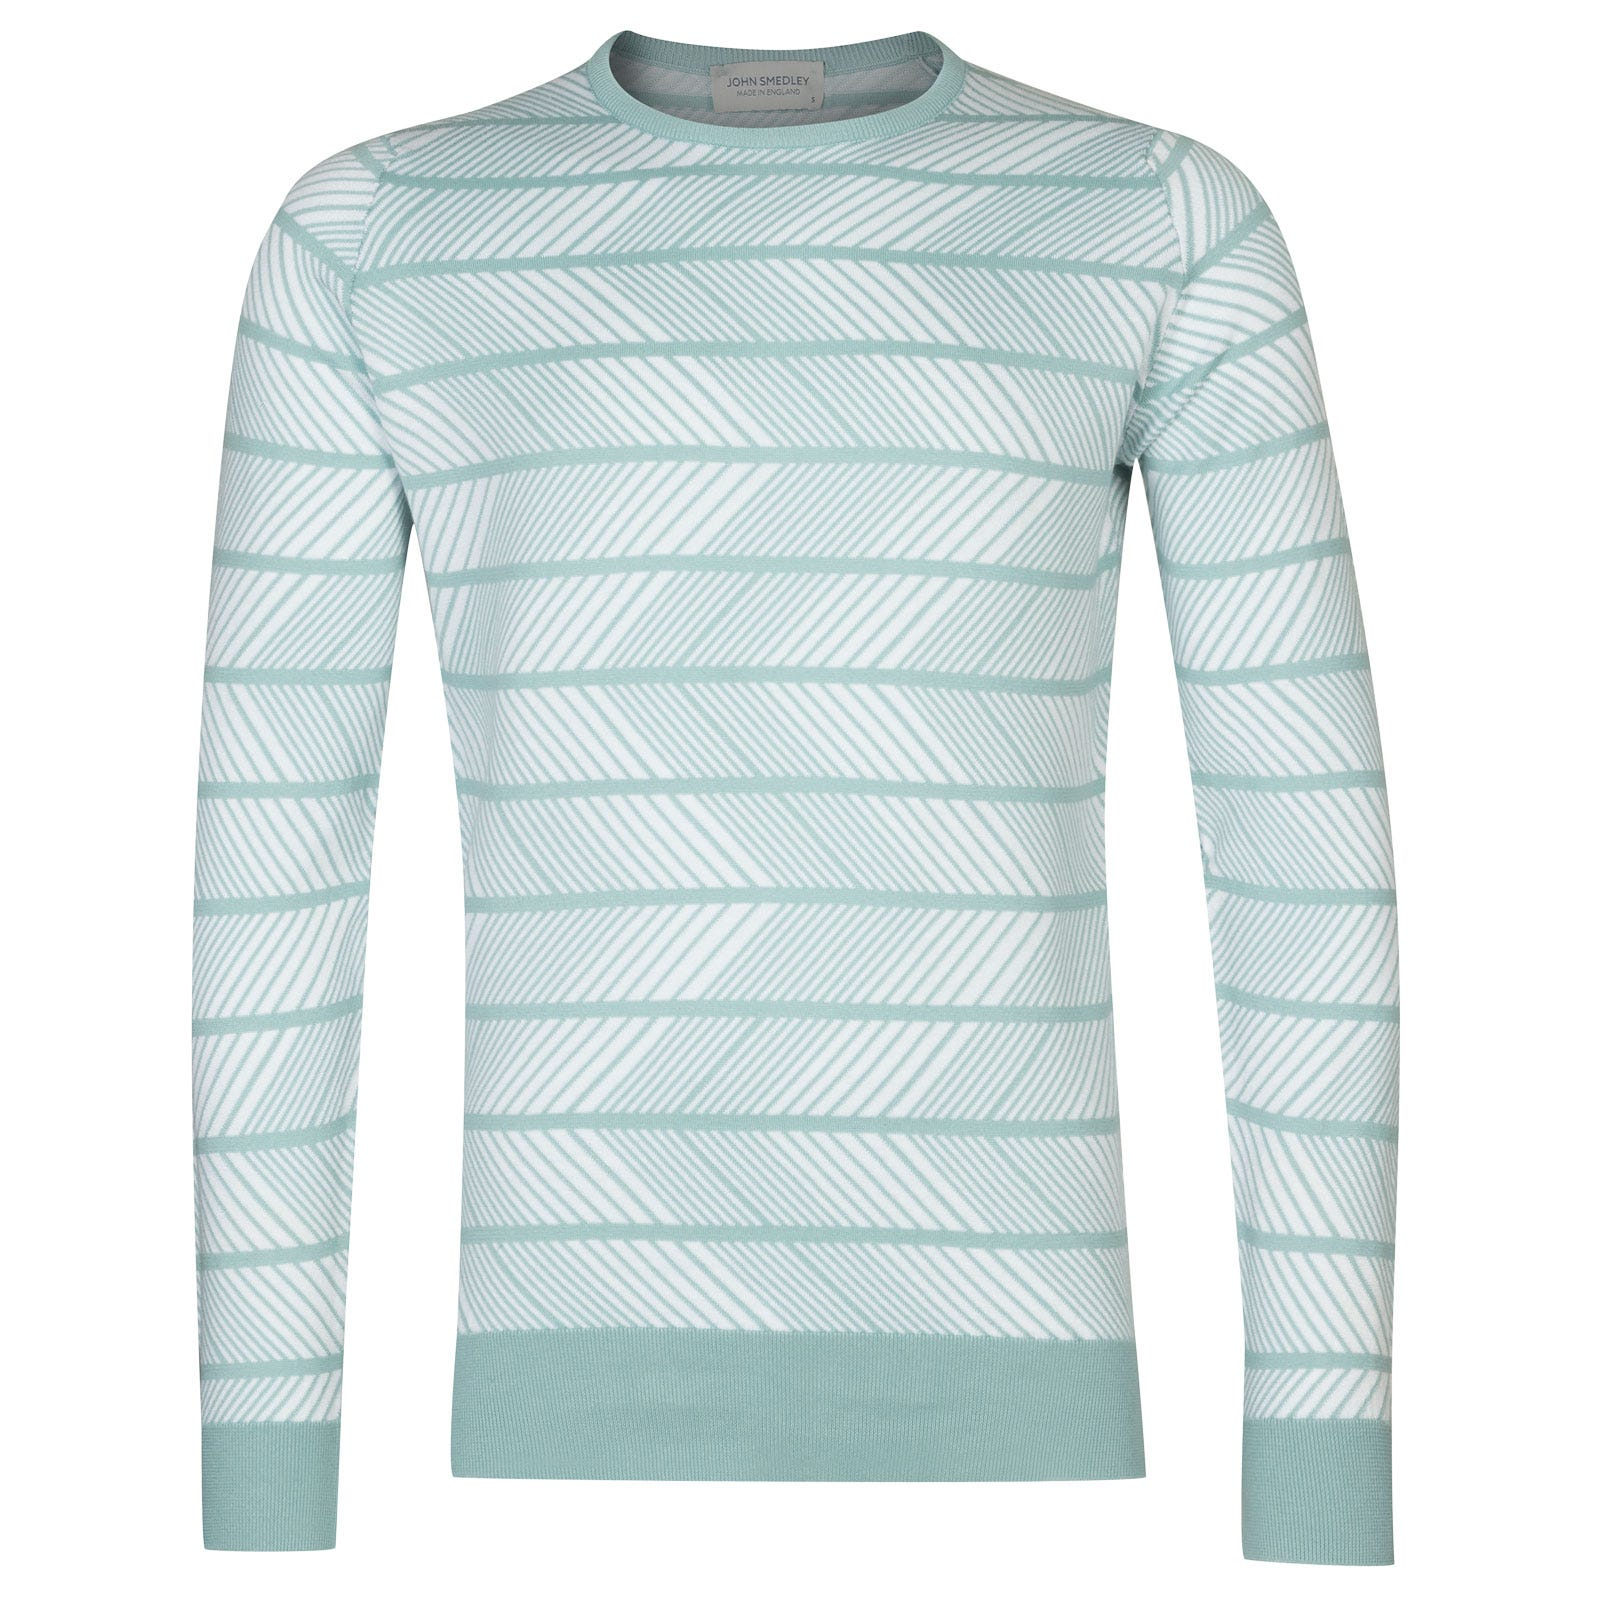 John Smedley Roose in Terrill Green-S